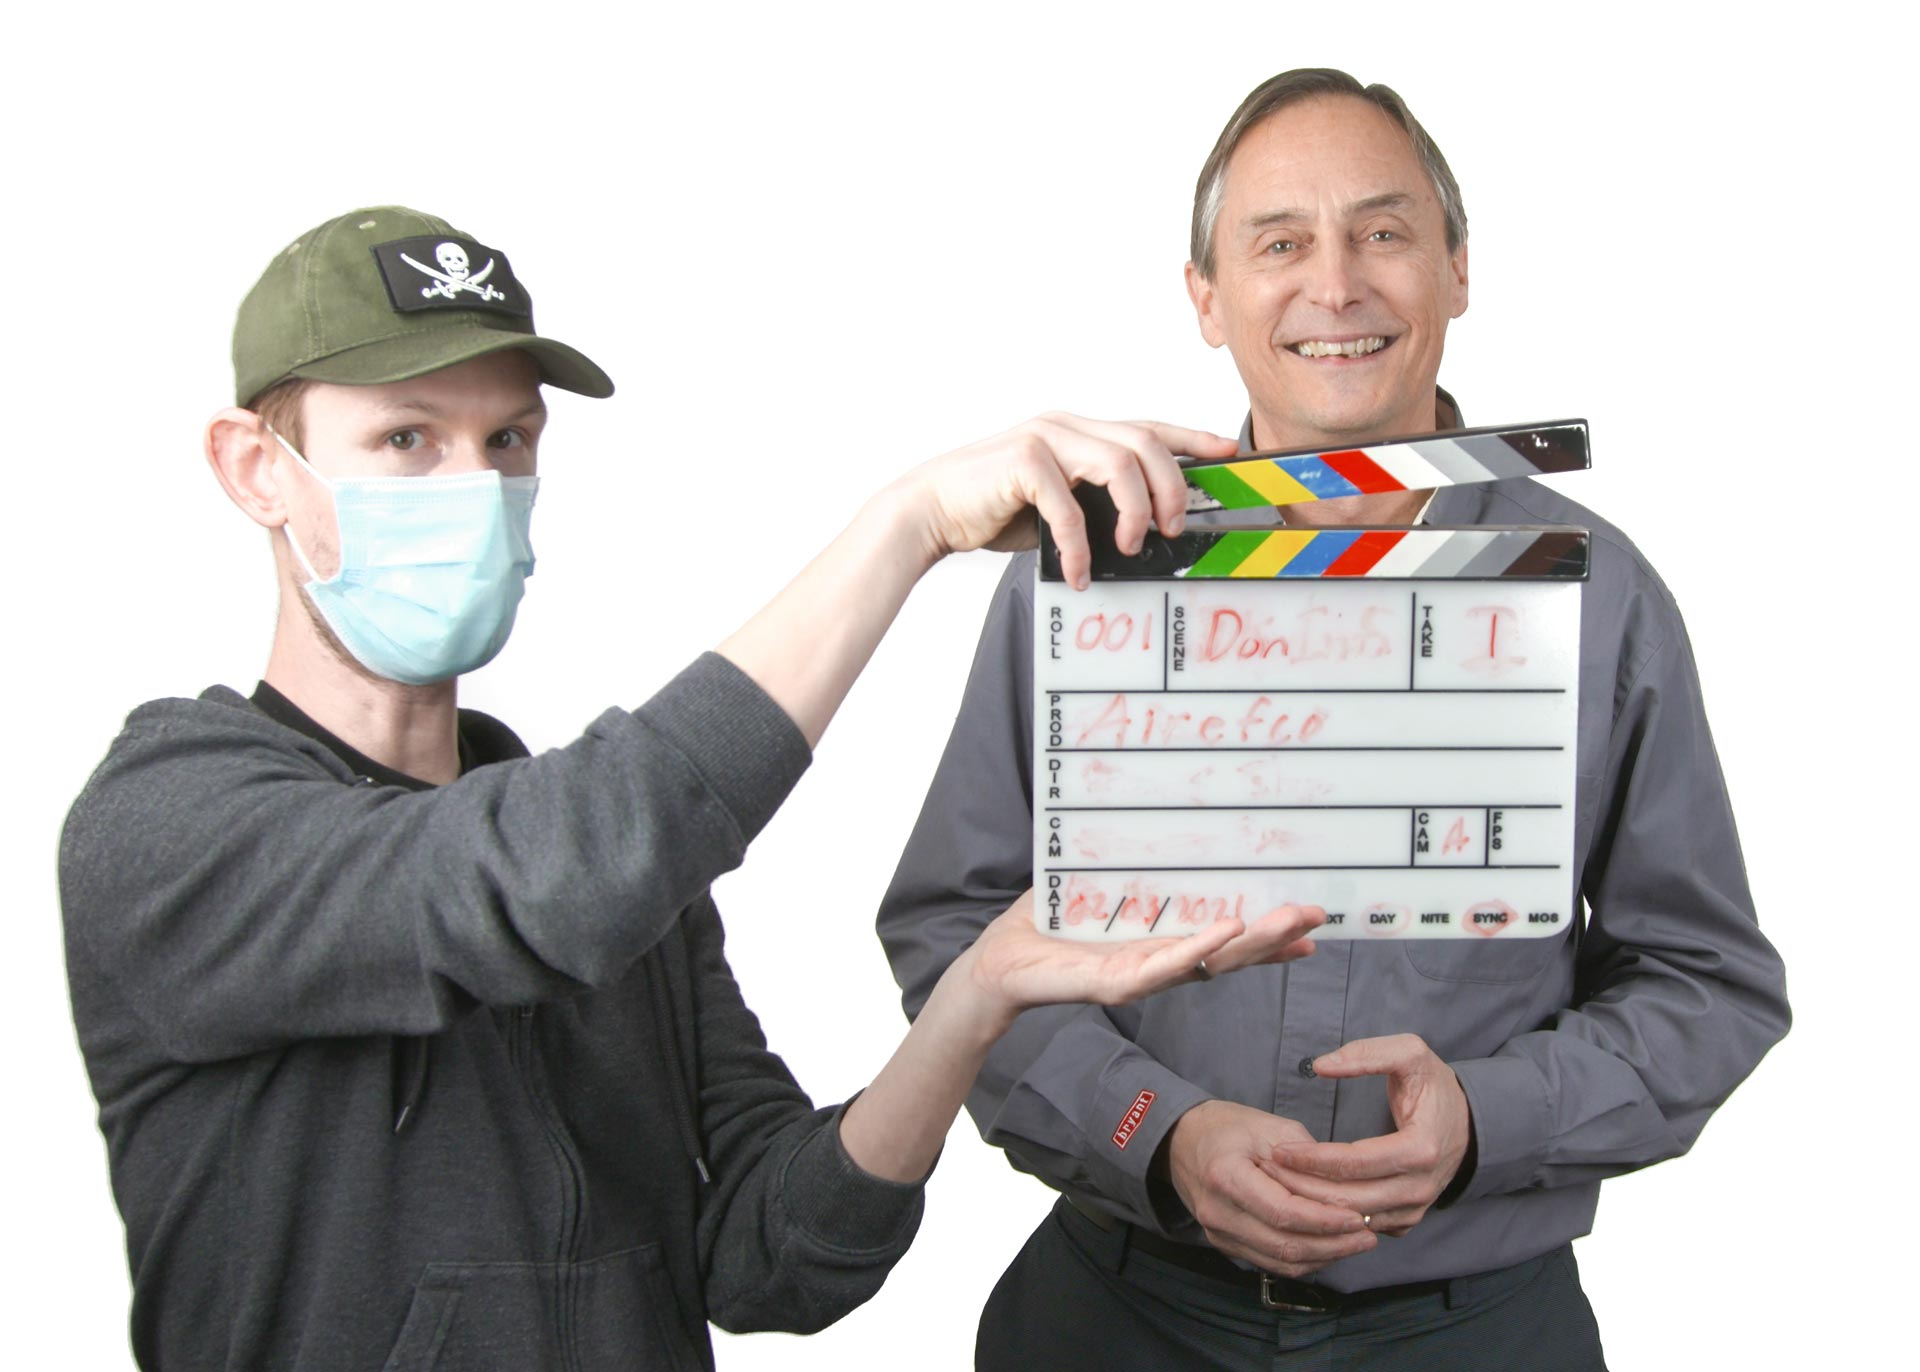 An A C holding up a slate in front of an interview subject standing in front of a stark white background on a video production set